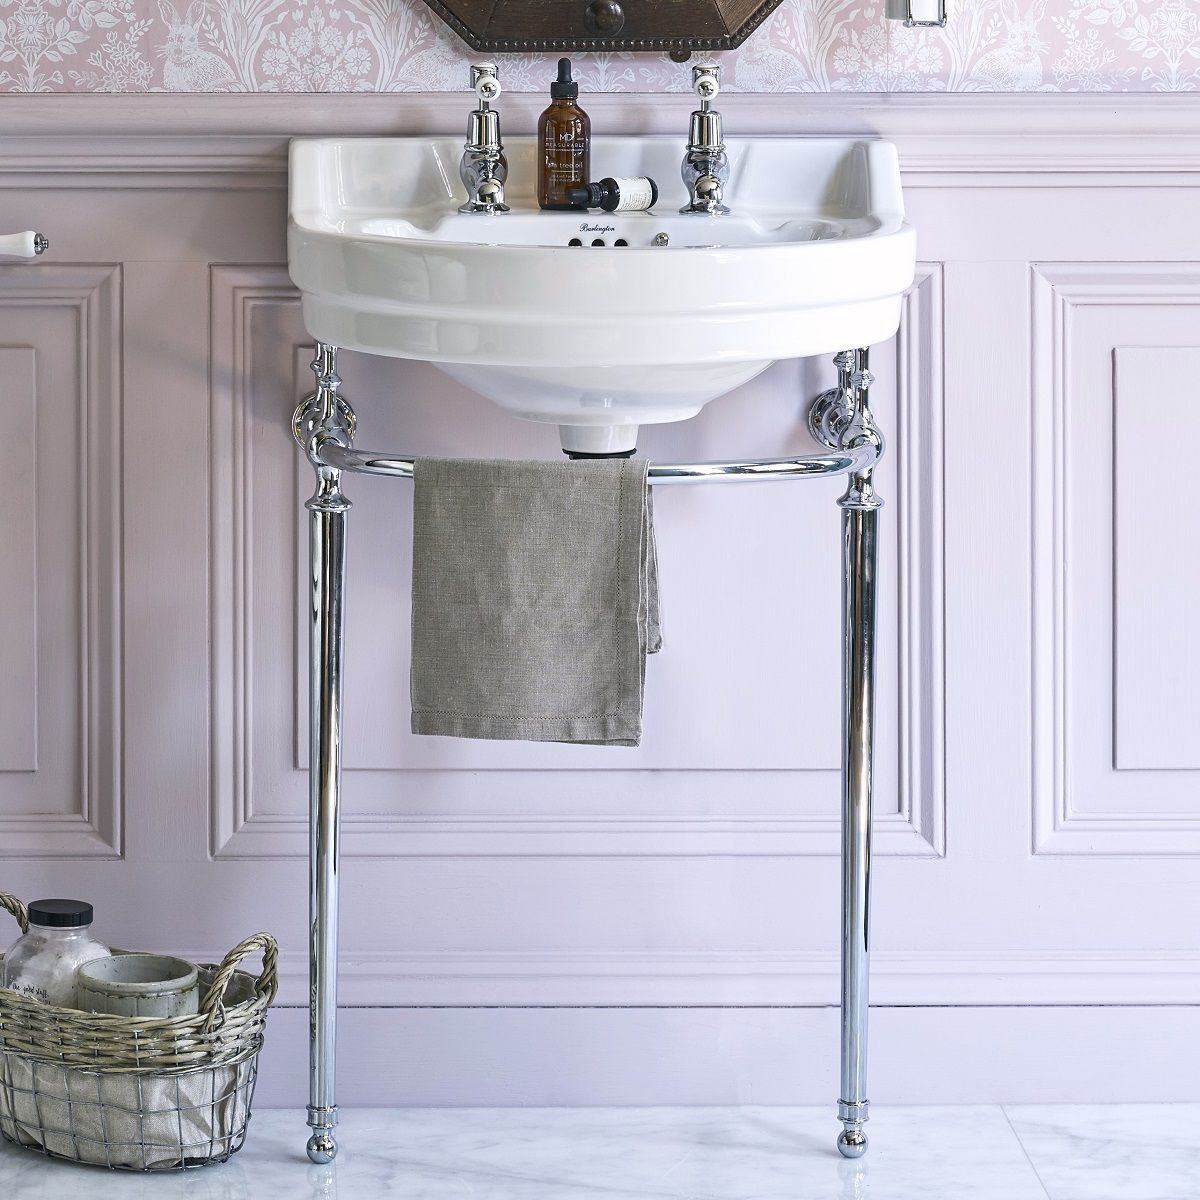 Edwardian Round Basin With Washstand - blueskybathrooms